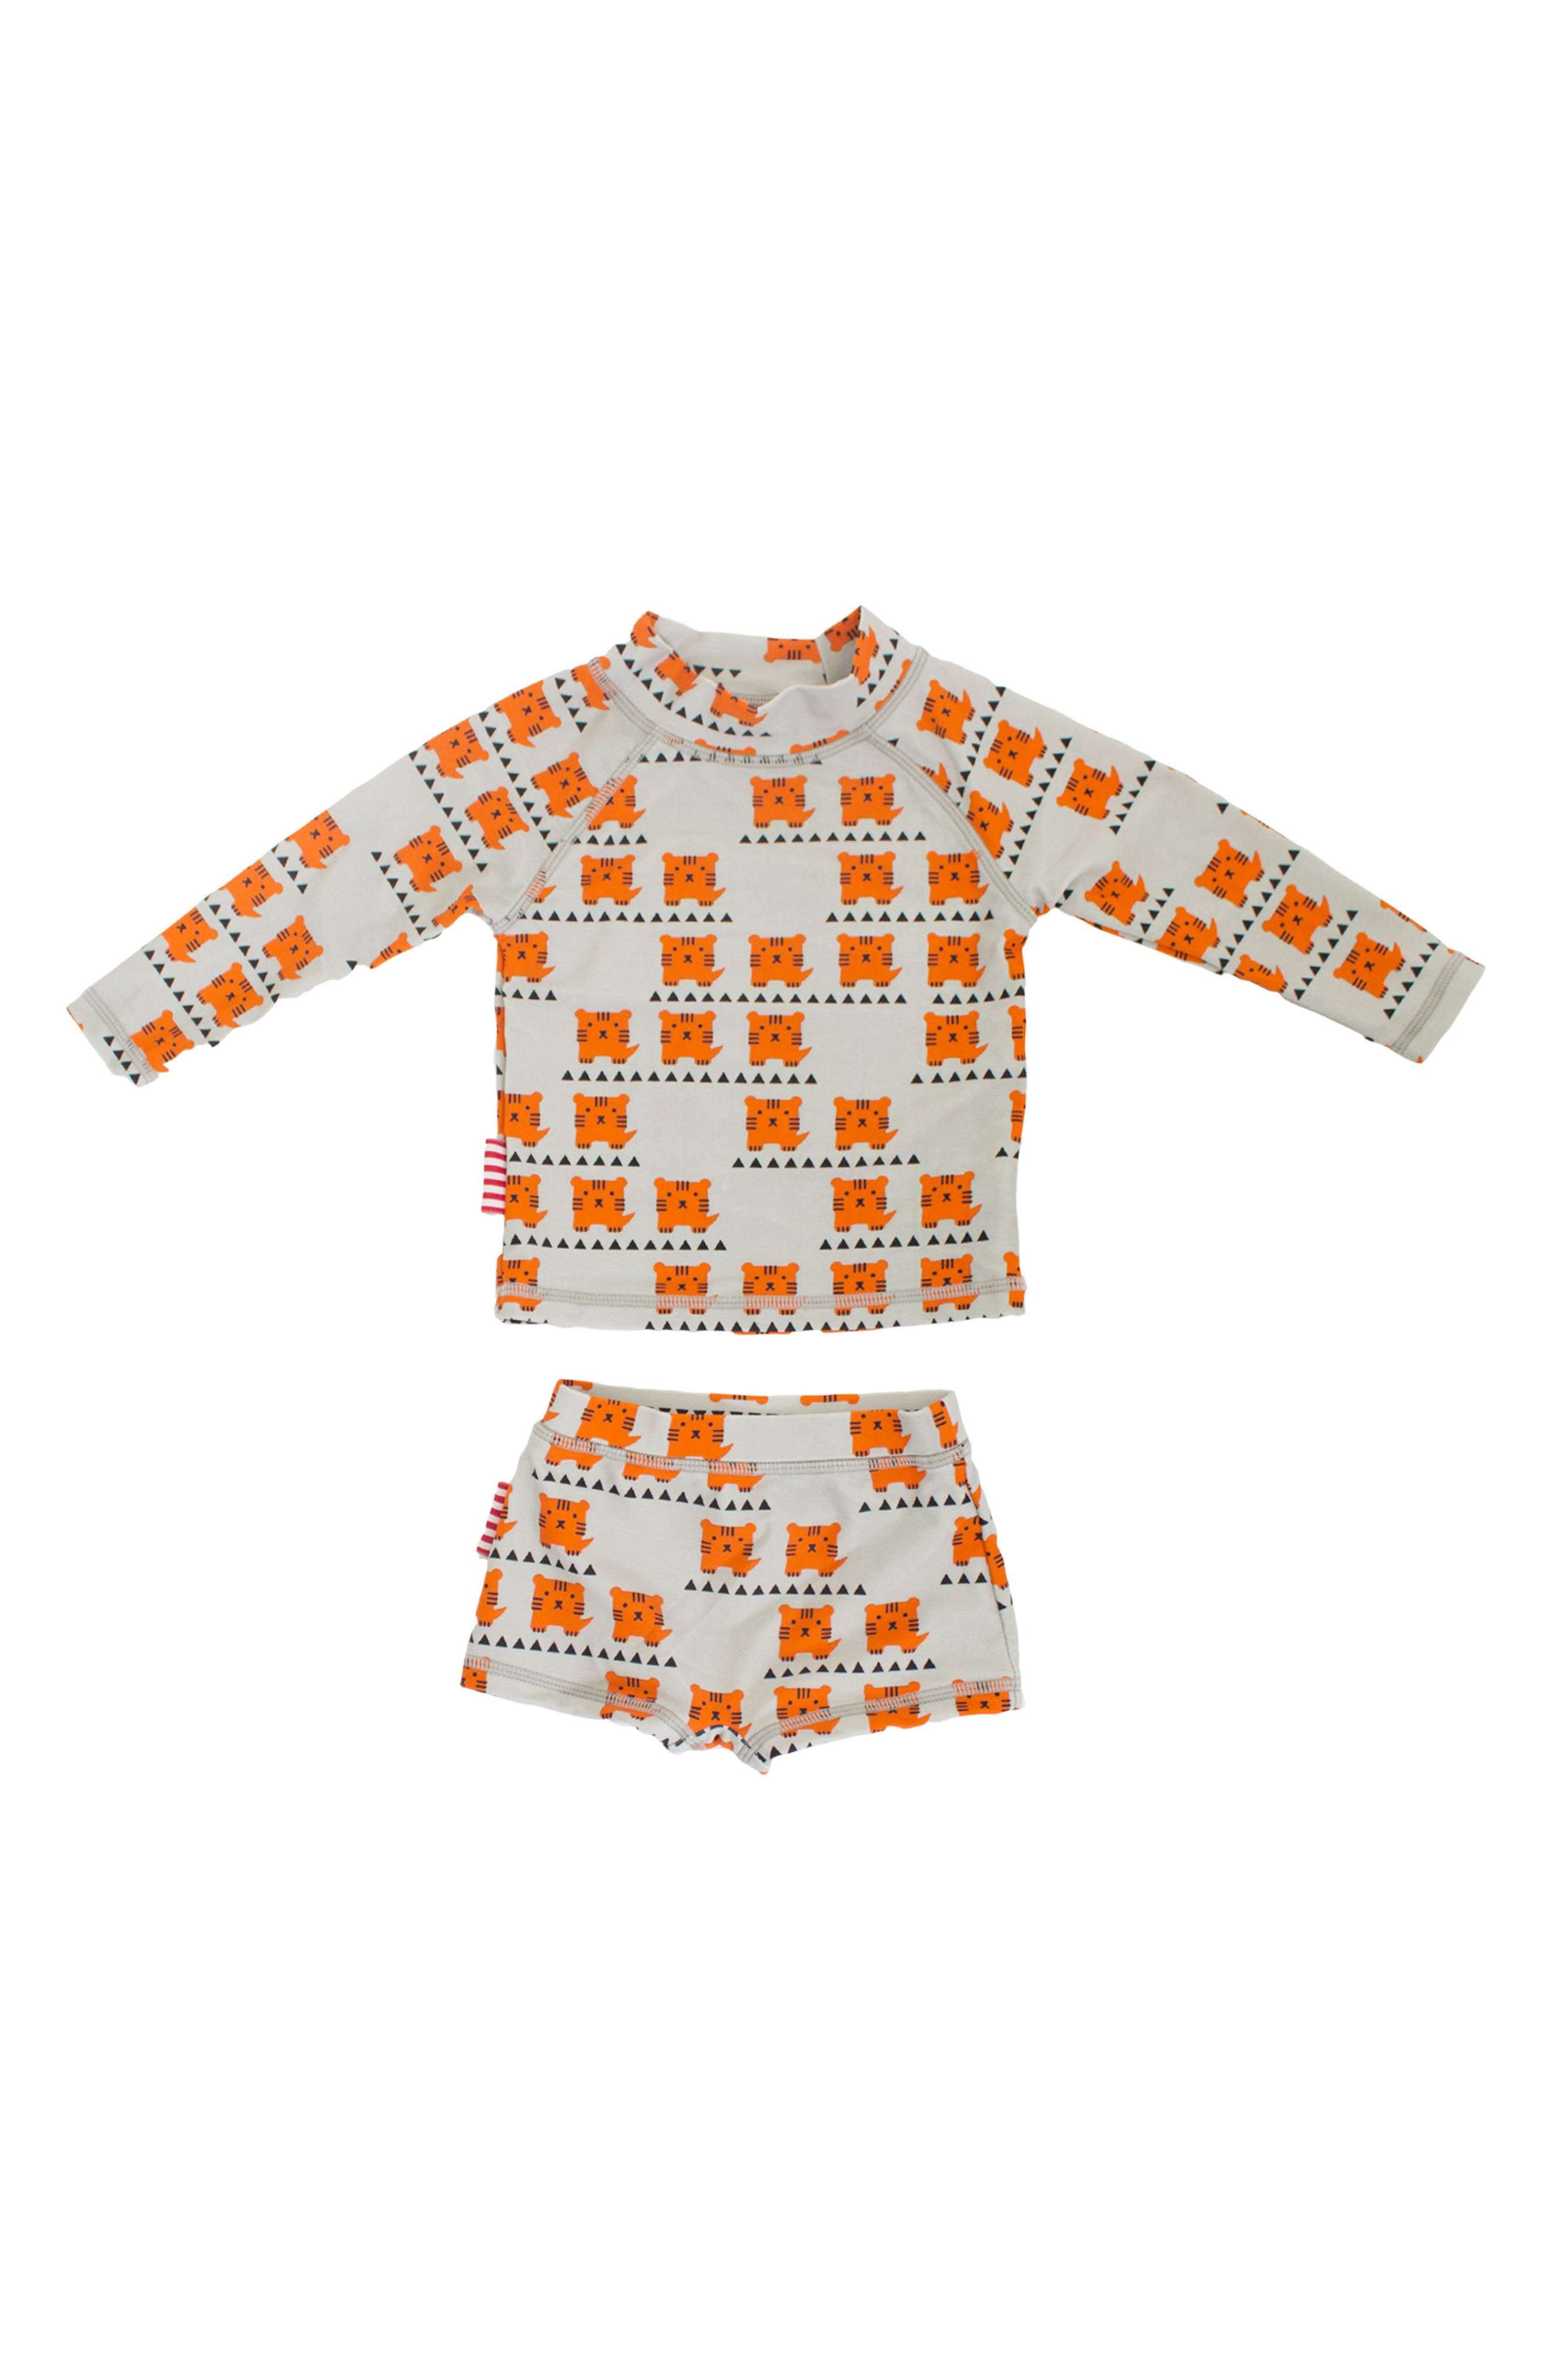 Alternate Image 1 Selected - SOOKIbaby Cub In The Hub Two-Piece Rashguard Swimsuit (Baby Boys)